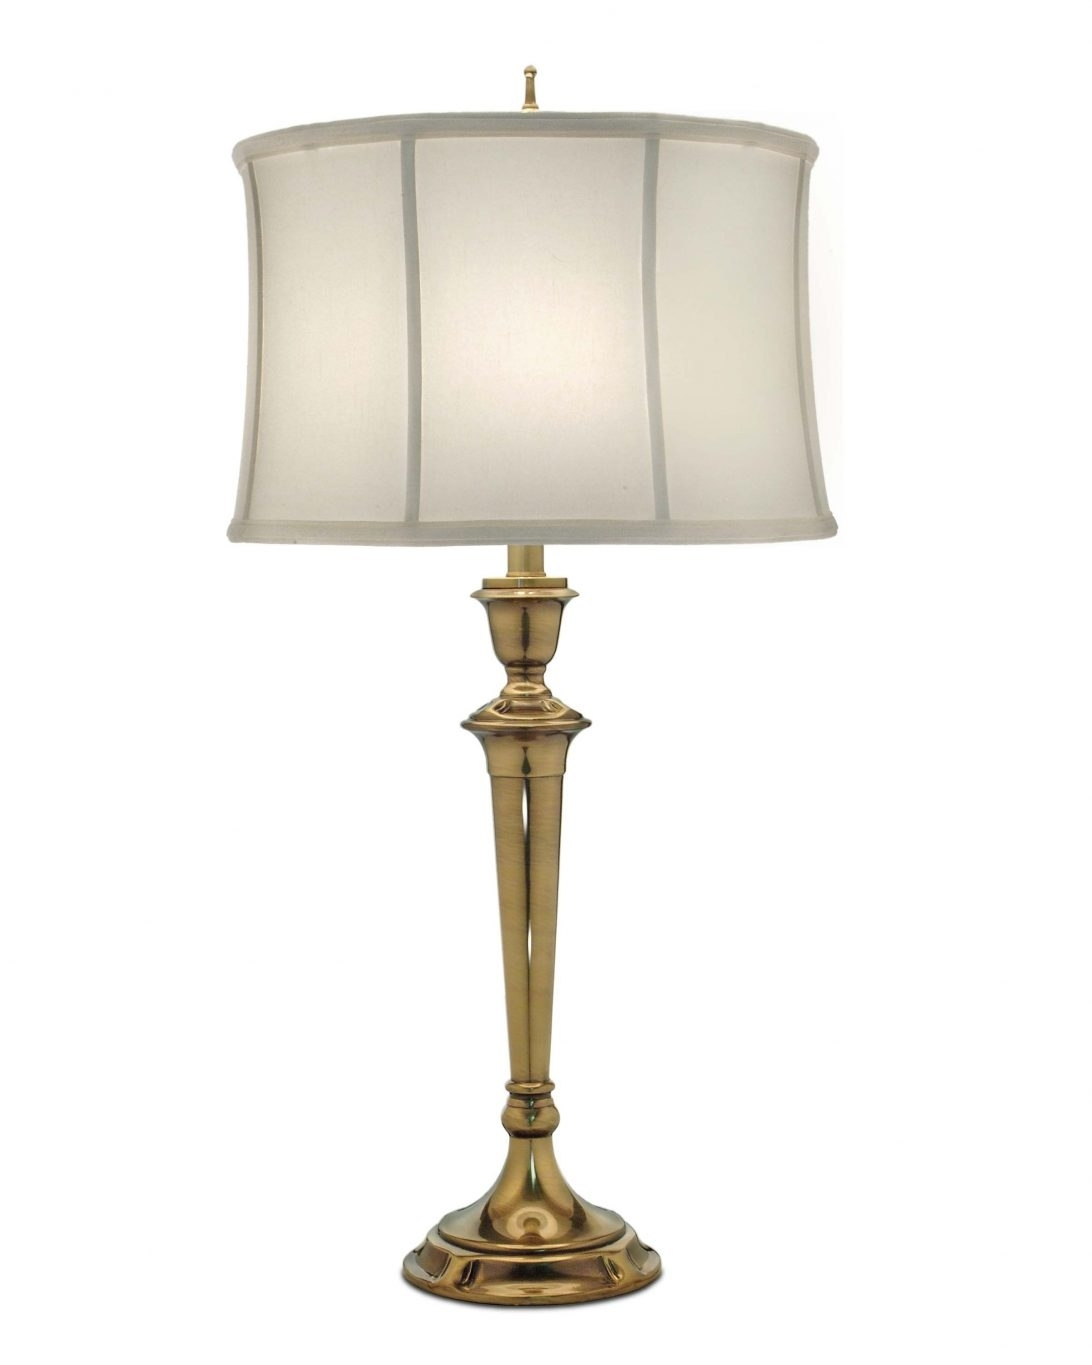 Top 62 Skookum Table Lamp Shades Lamps For Living Room Traditional In Table Lamps For Traditional Living Room (View 11 of 15)